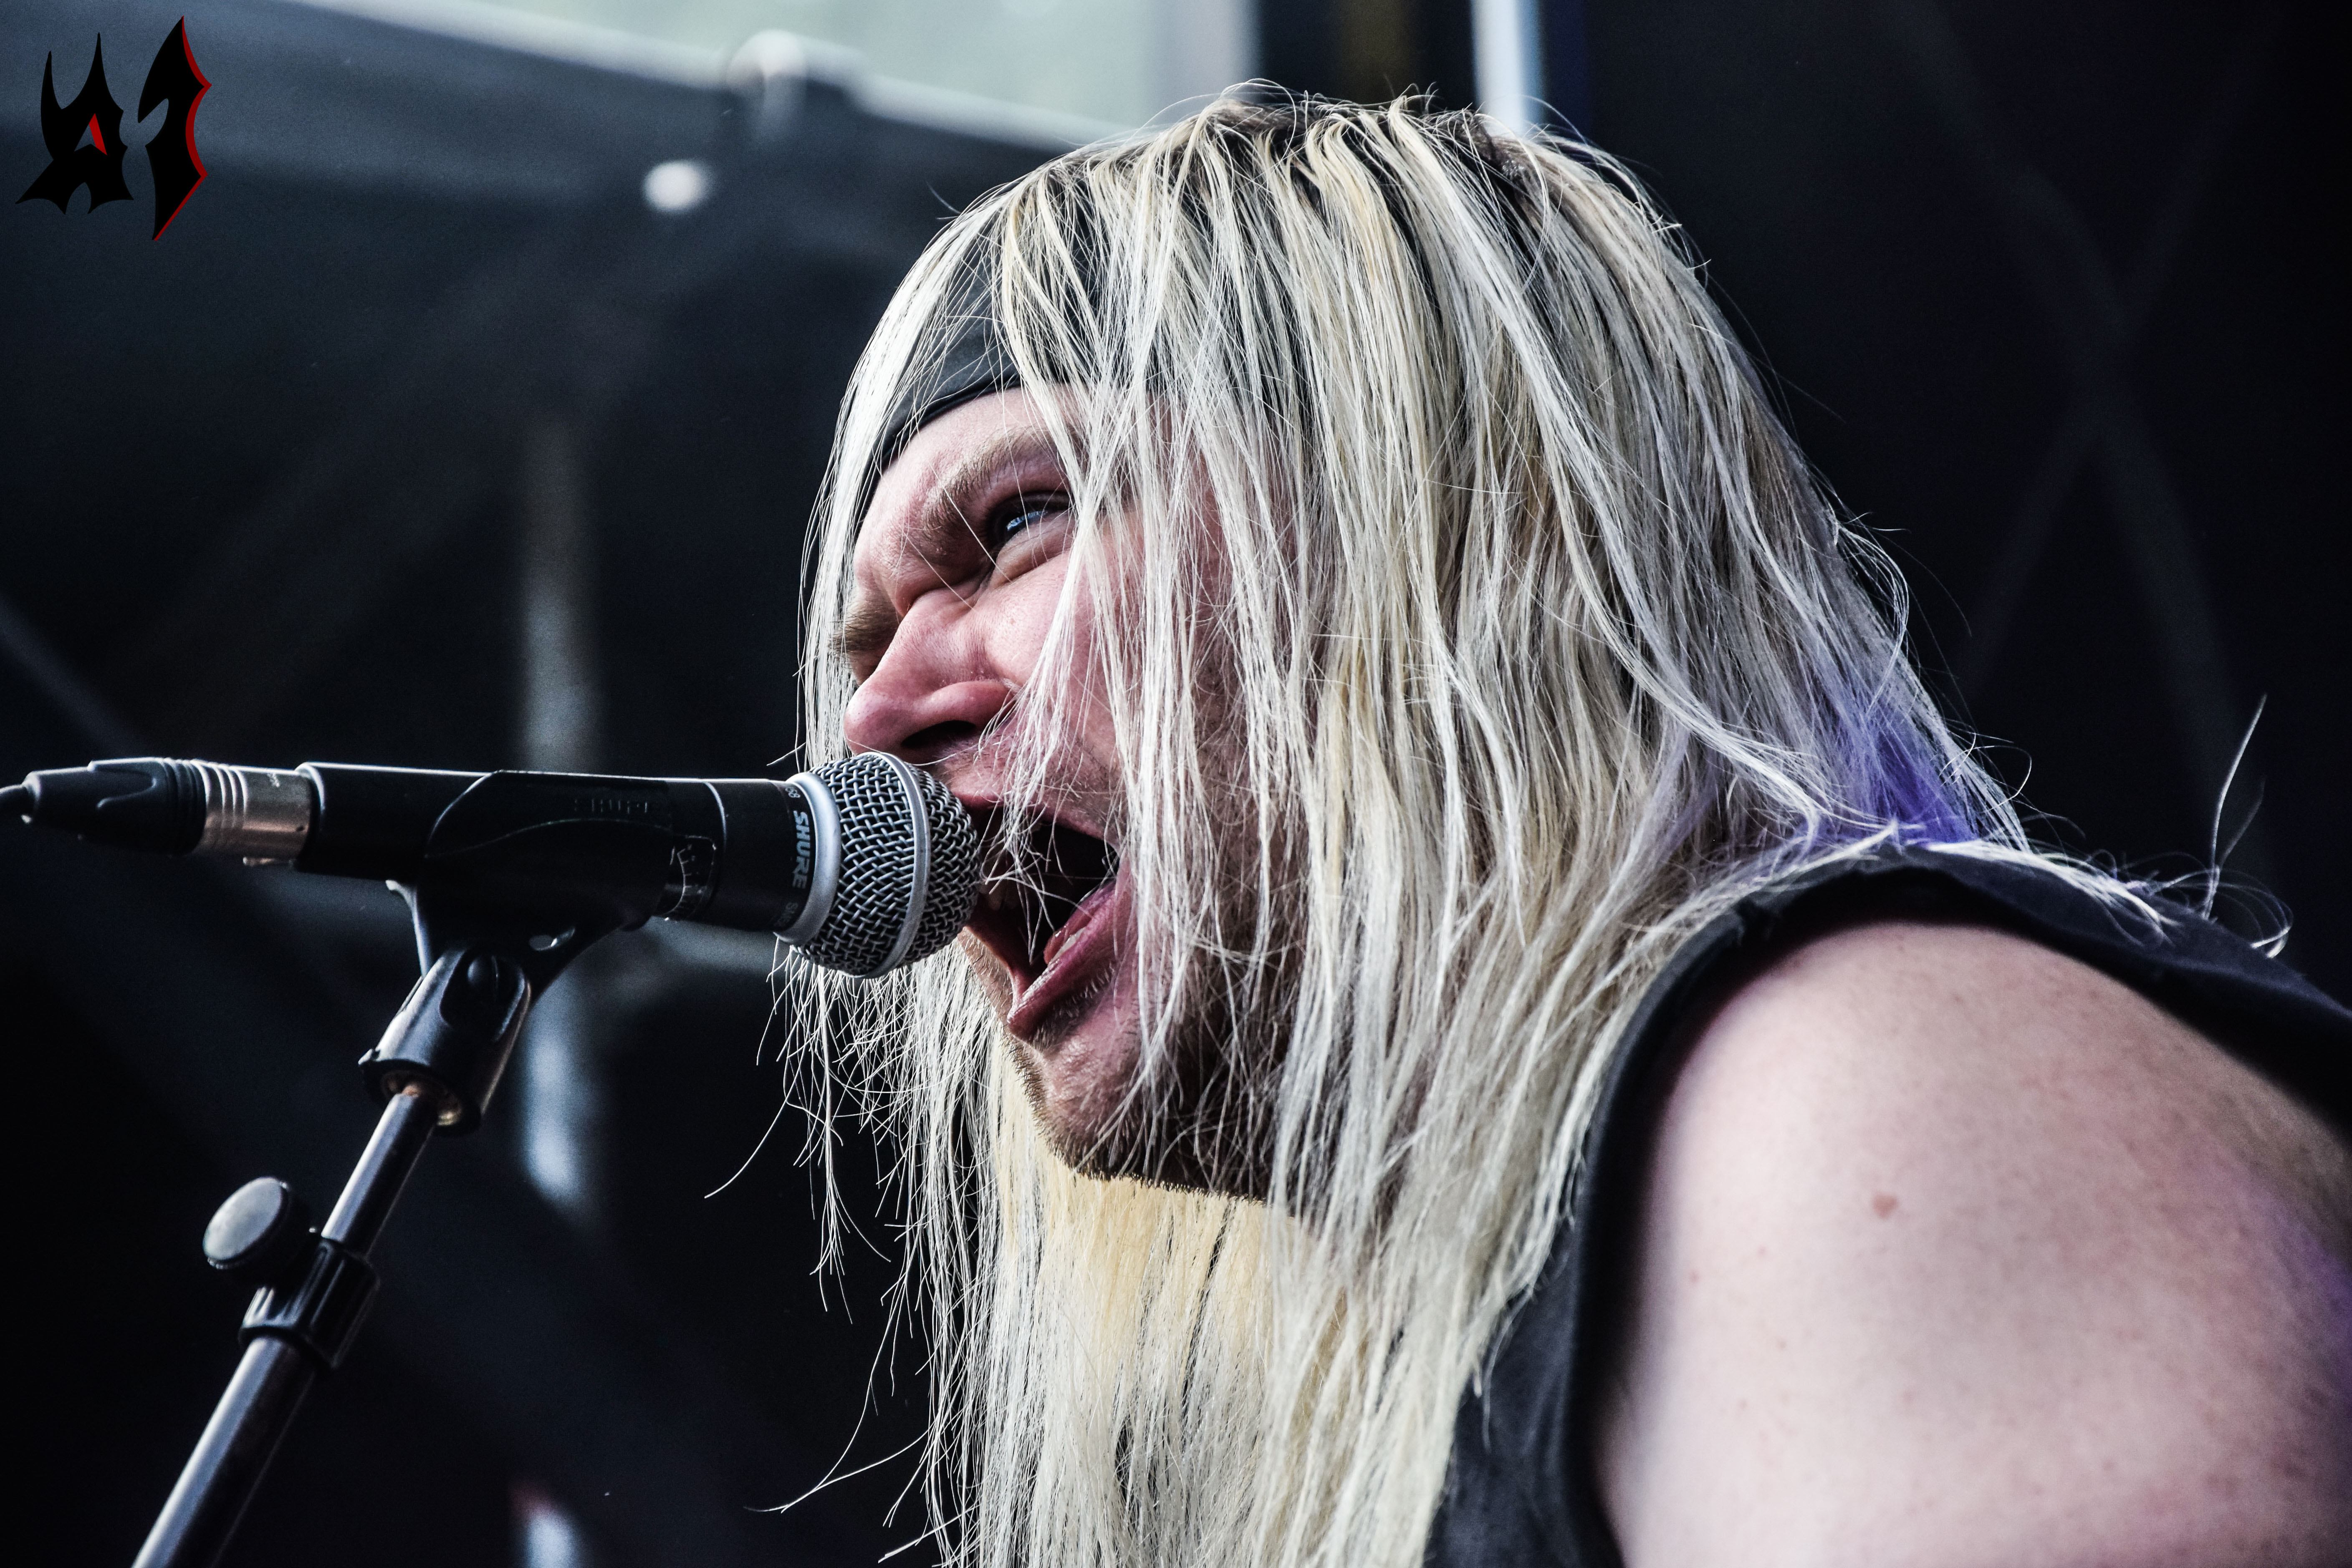 Motocultor 2018 – Day 3 - Toxic Holocaust 7